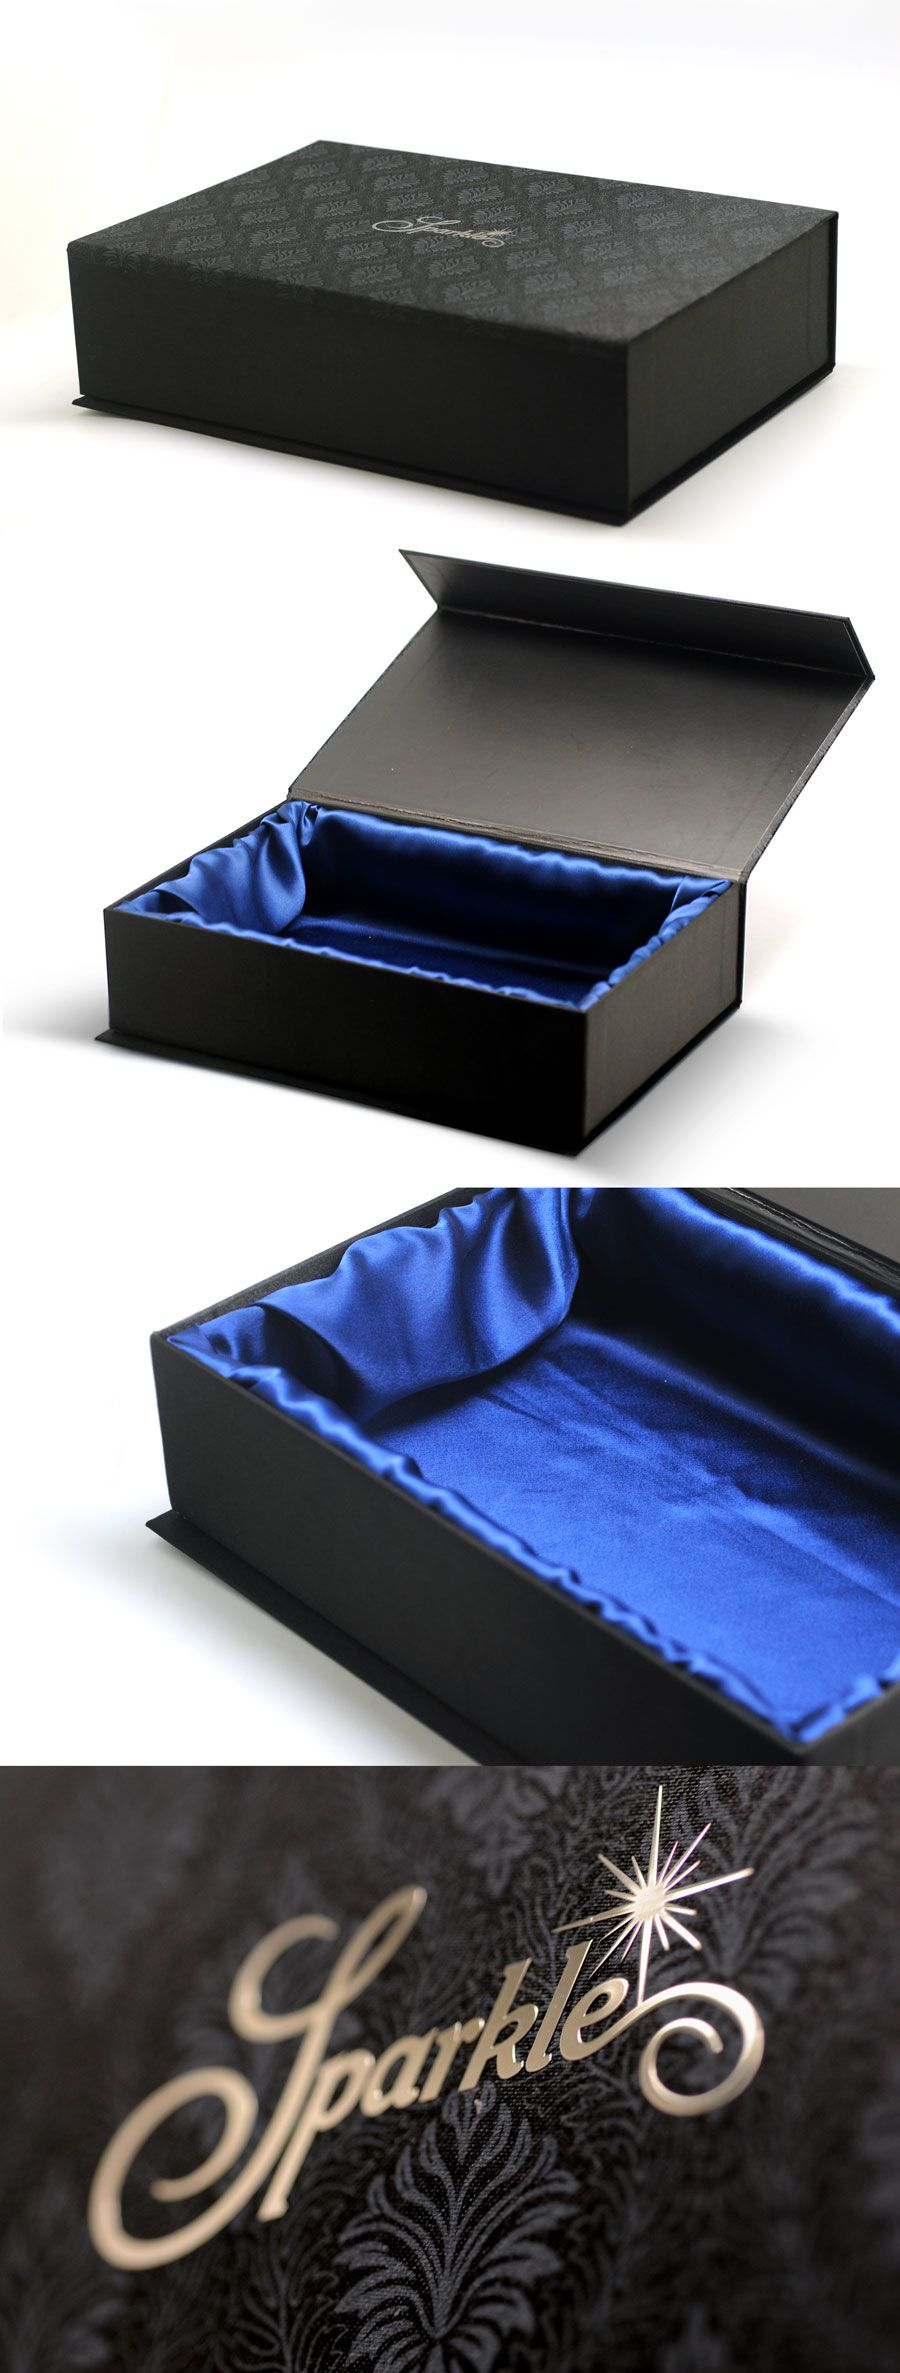 Luxury Rigid Box with Cloth Material … | Pinteres…